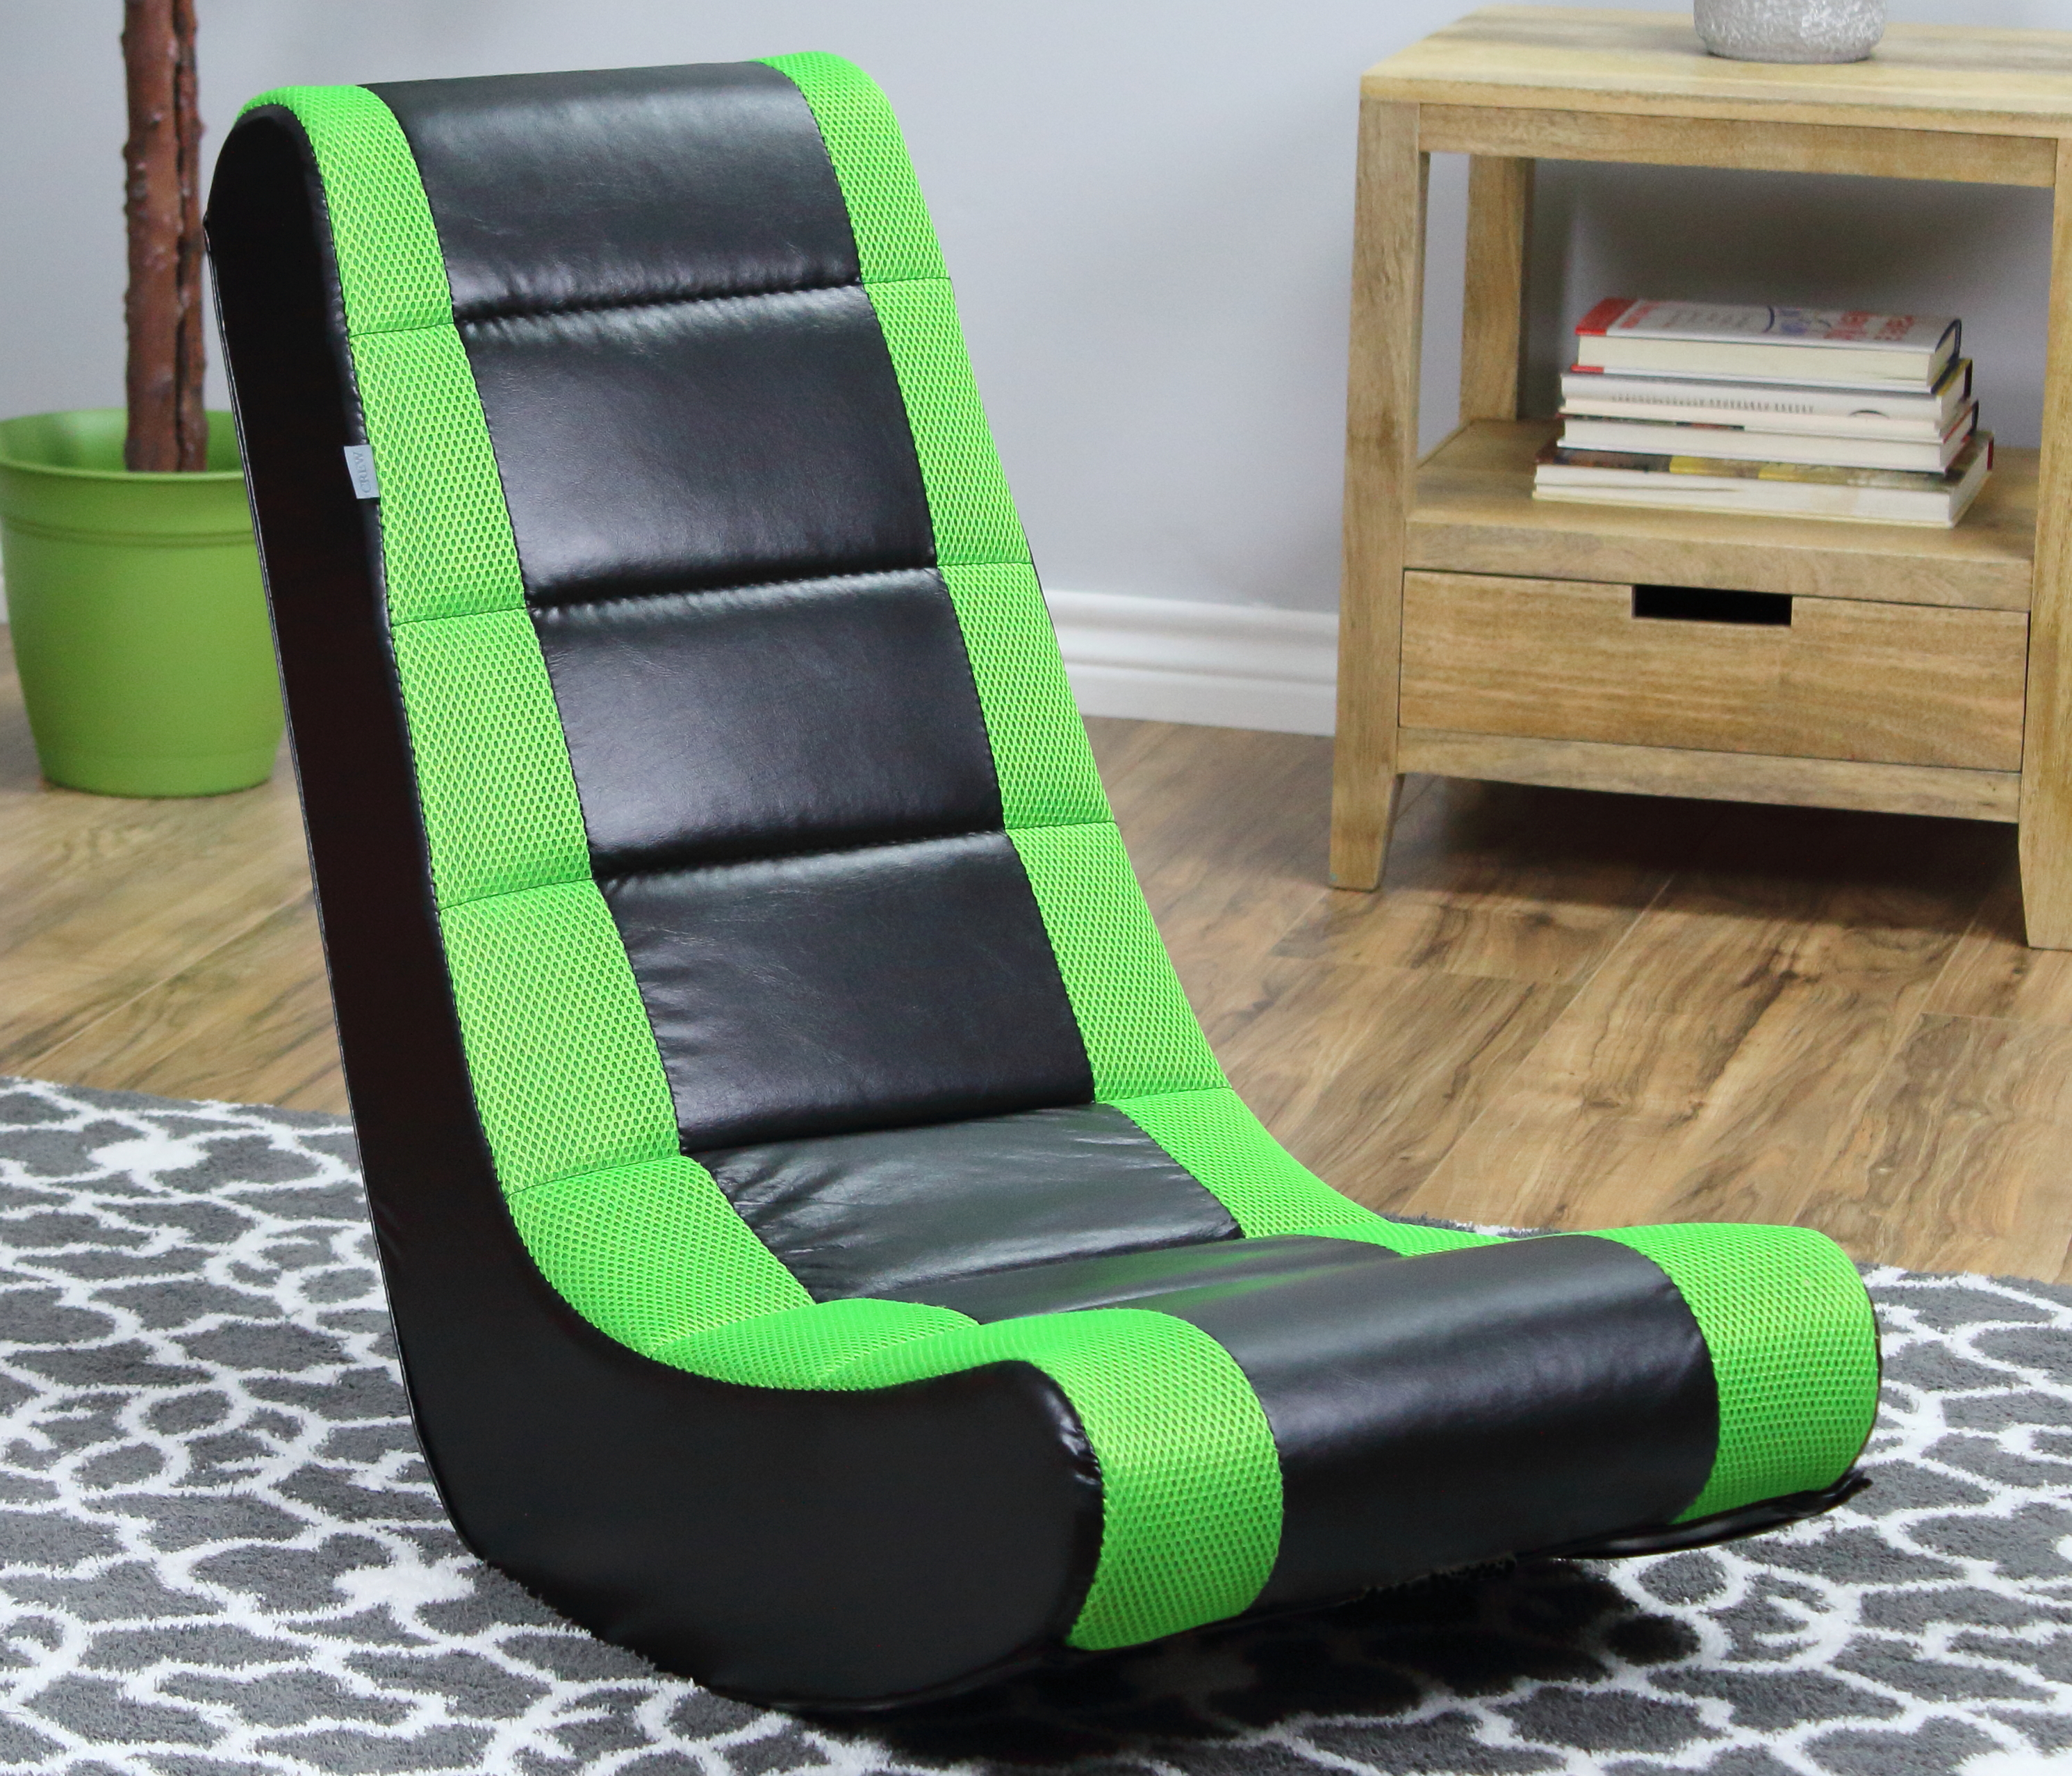 Gaming Chair For Kids S Video Tv Movie Rocker Floor Room Black Neon Green